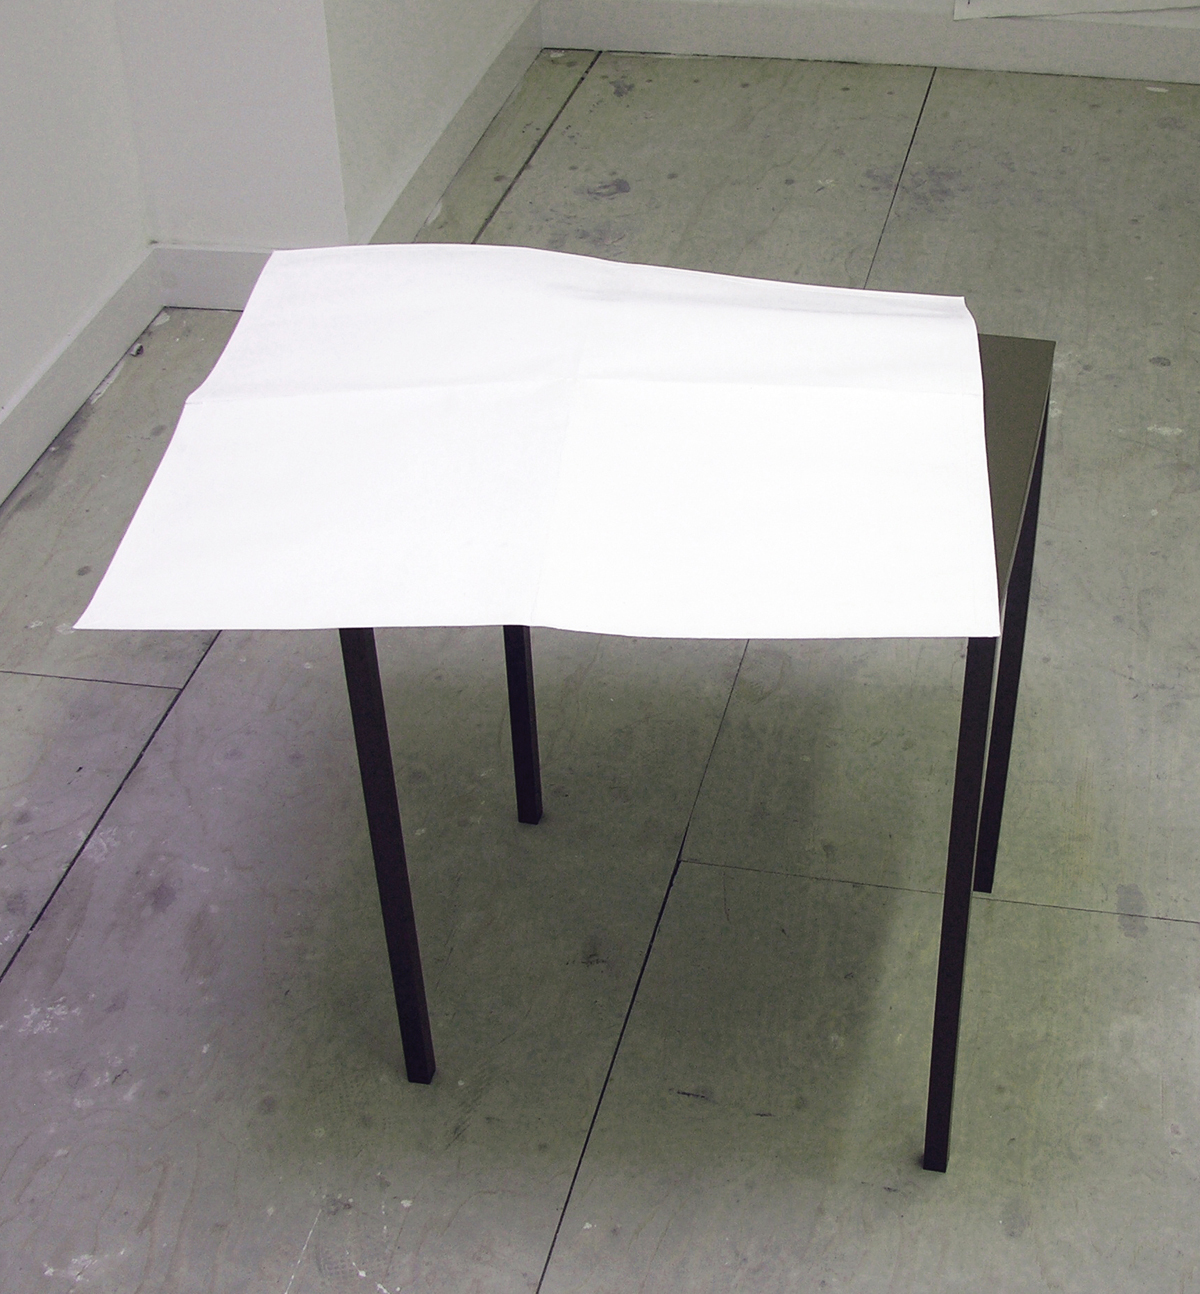 Sculpture of a Table #2